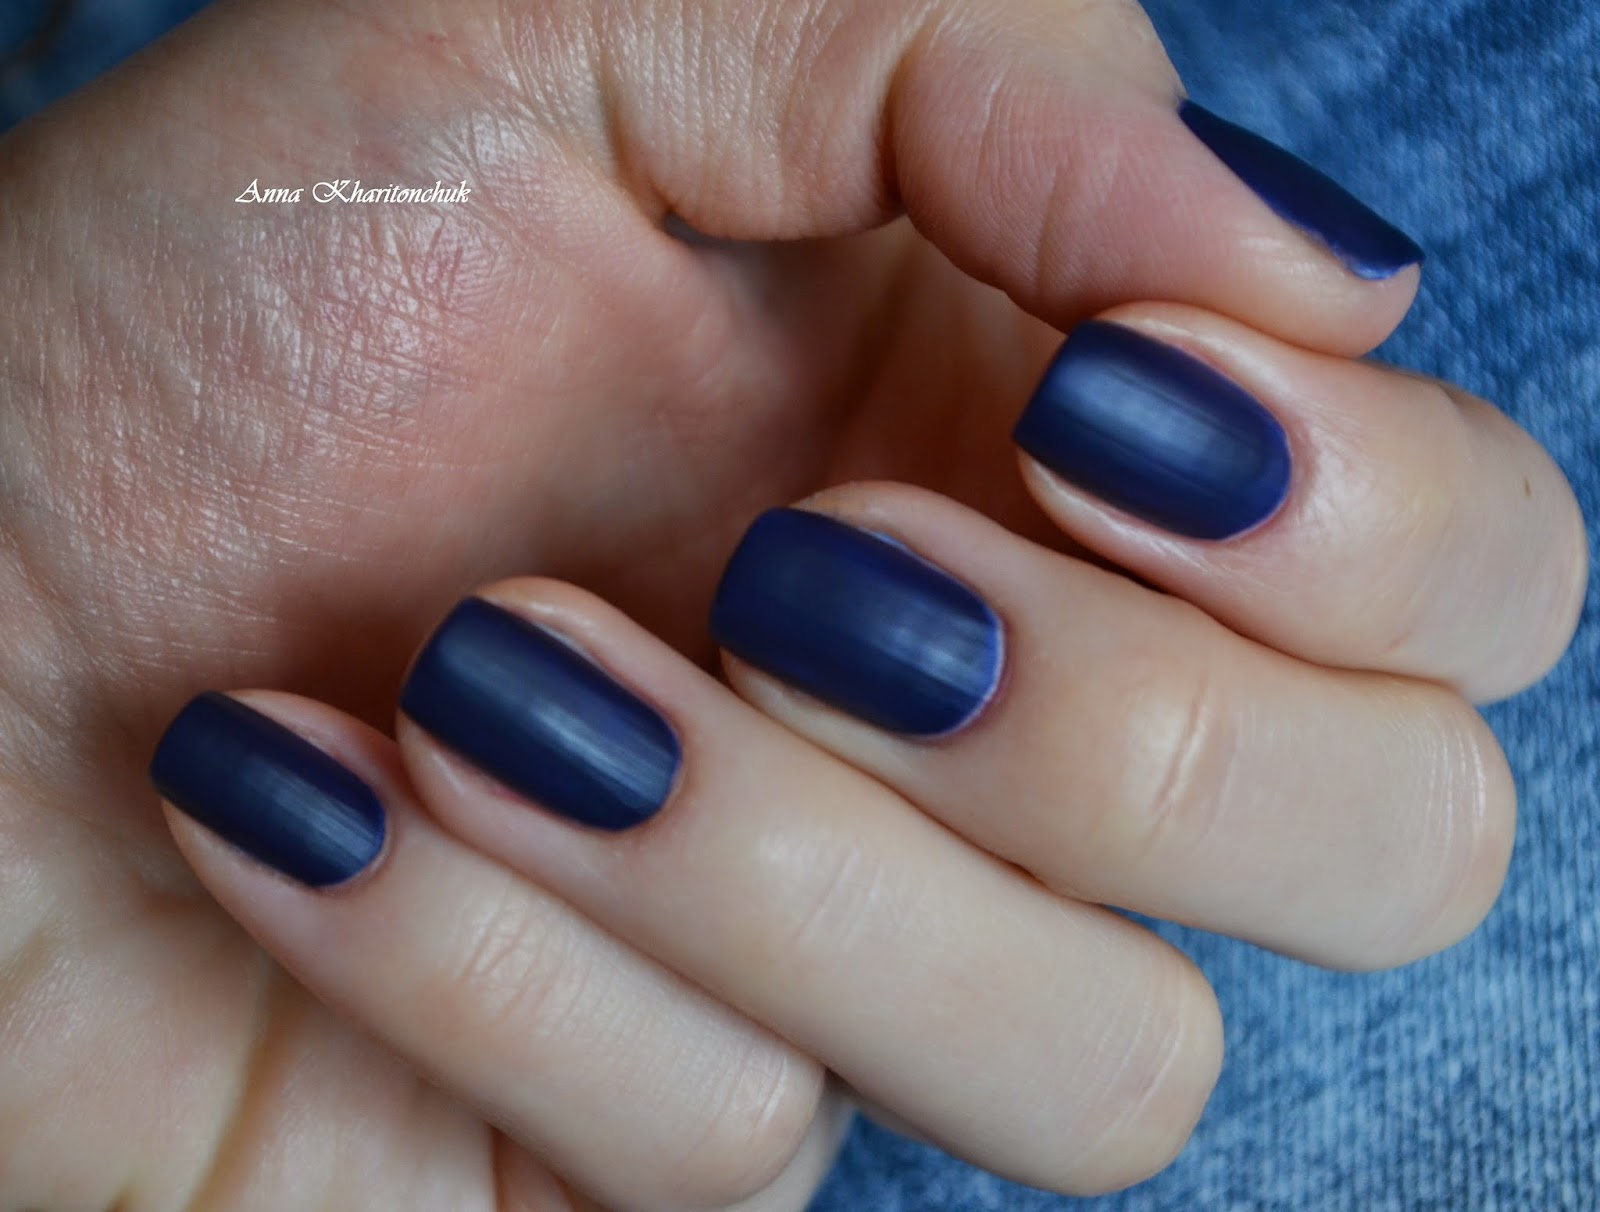 Rimmel London Velvet Matte # 015 Midnight Kiss и стемпинг с плитки BP-L 003